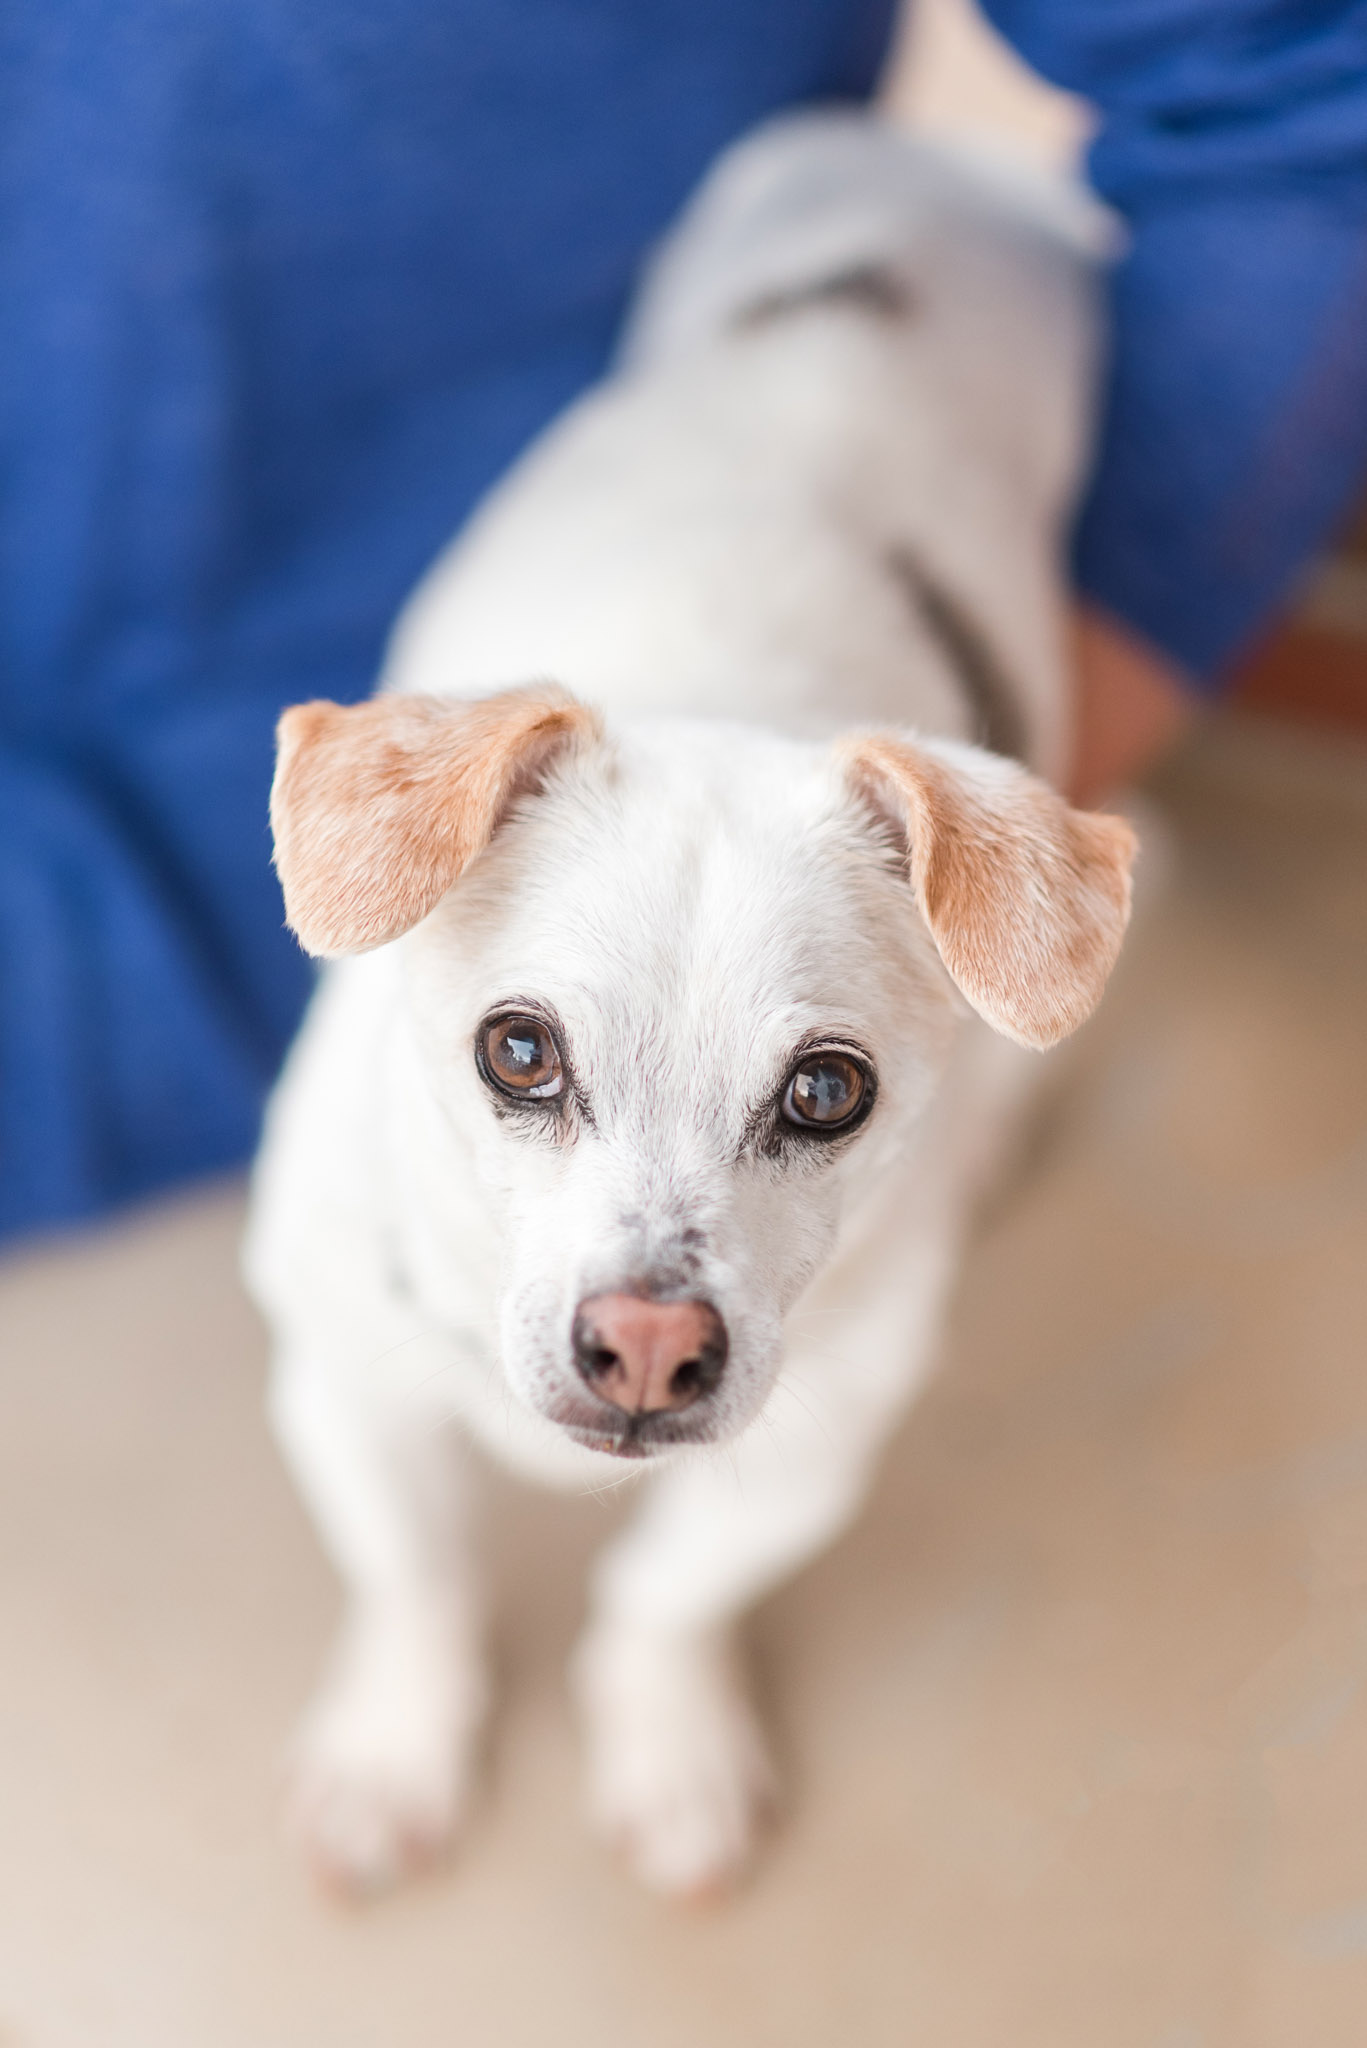 Senior dog proofing your house is about creating a comfortable space for you & your aging dog.